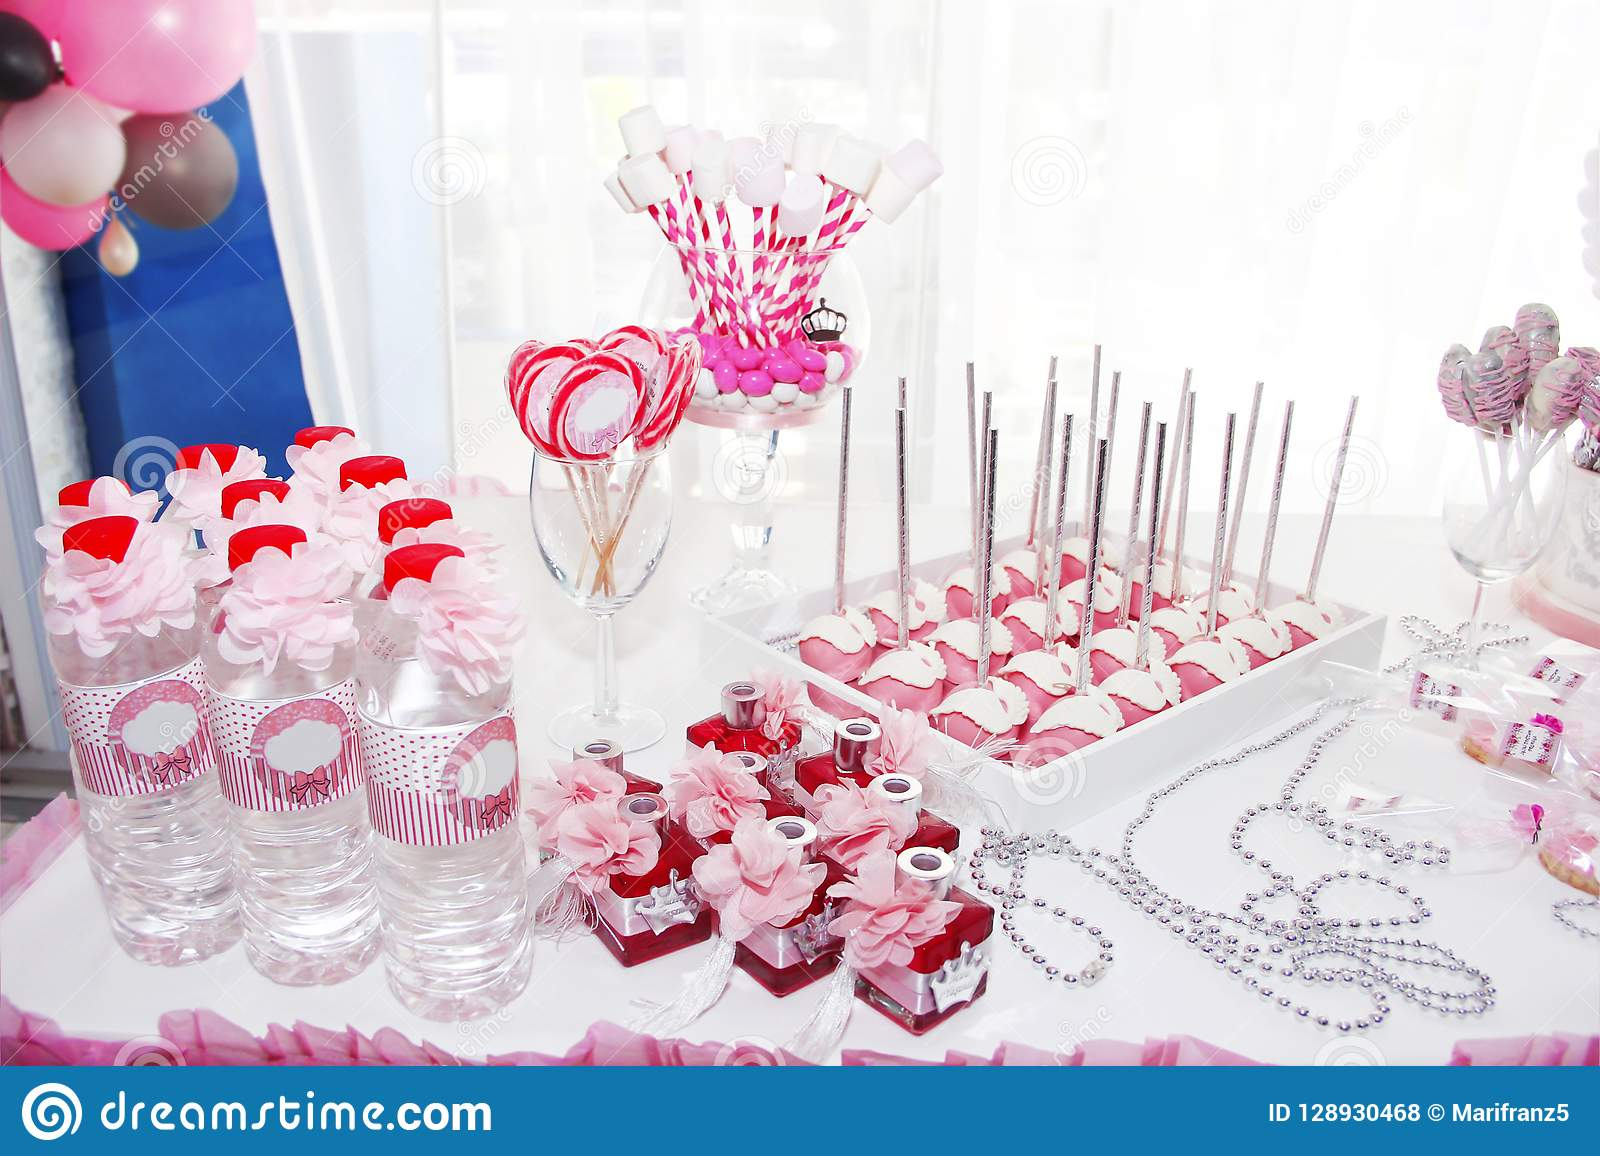 Festive Table Decorations With Cake Cupcakes Sweets And Gifts In Pink Color